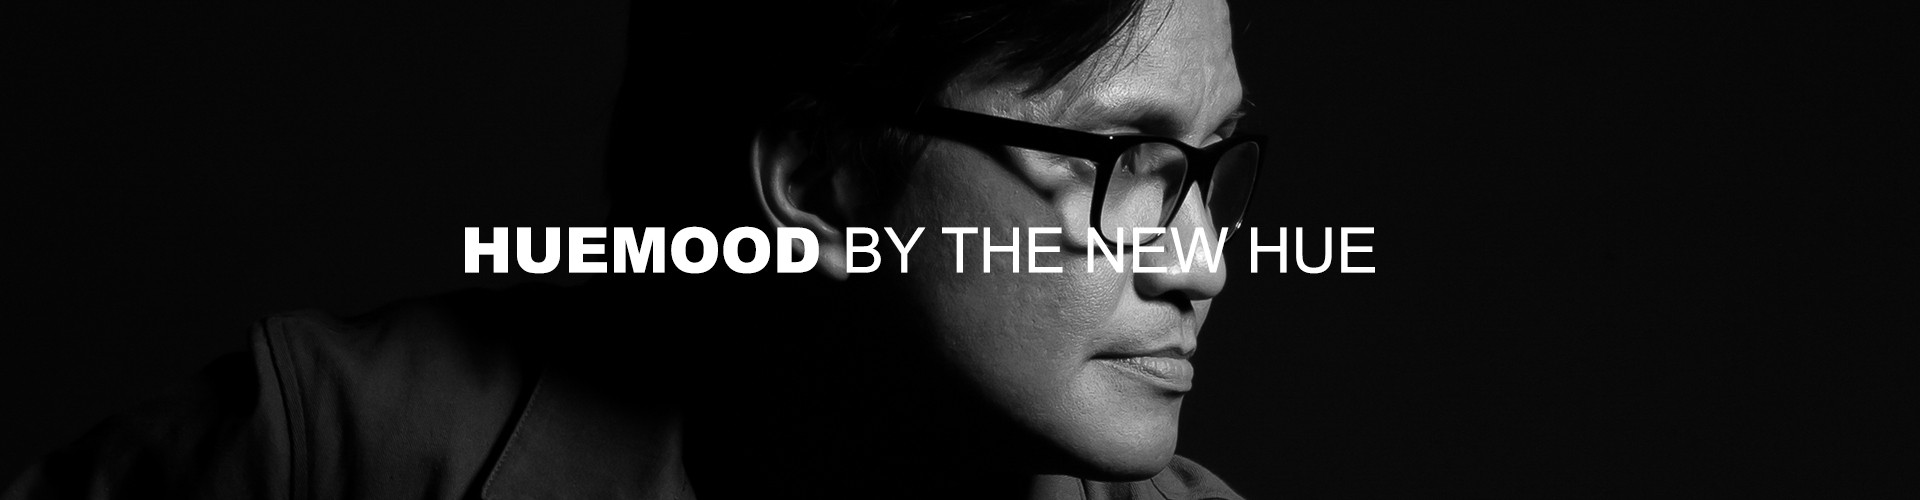 H and Reg is back as the pod kicks in for another season for Huemood as Ebe Dancel joins us with his playlist 'Mga Paborito'.